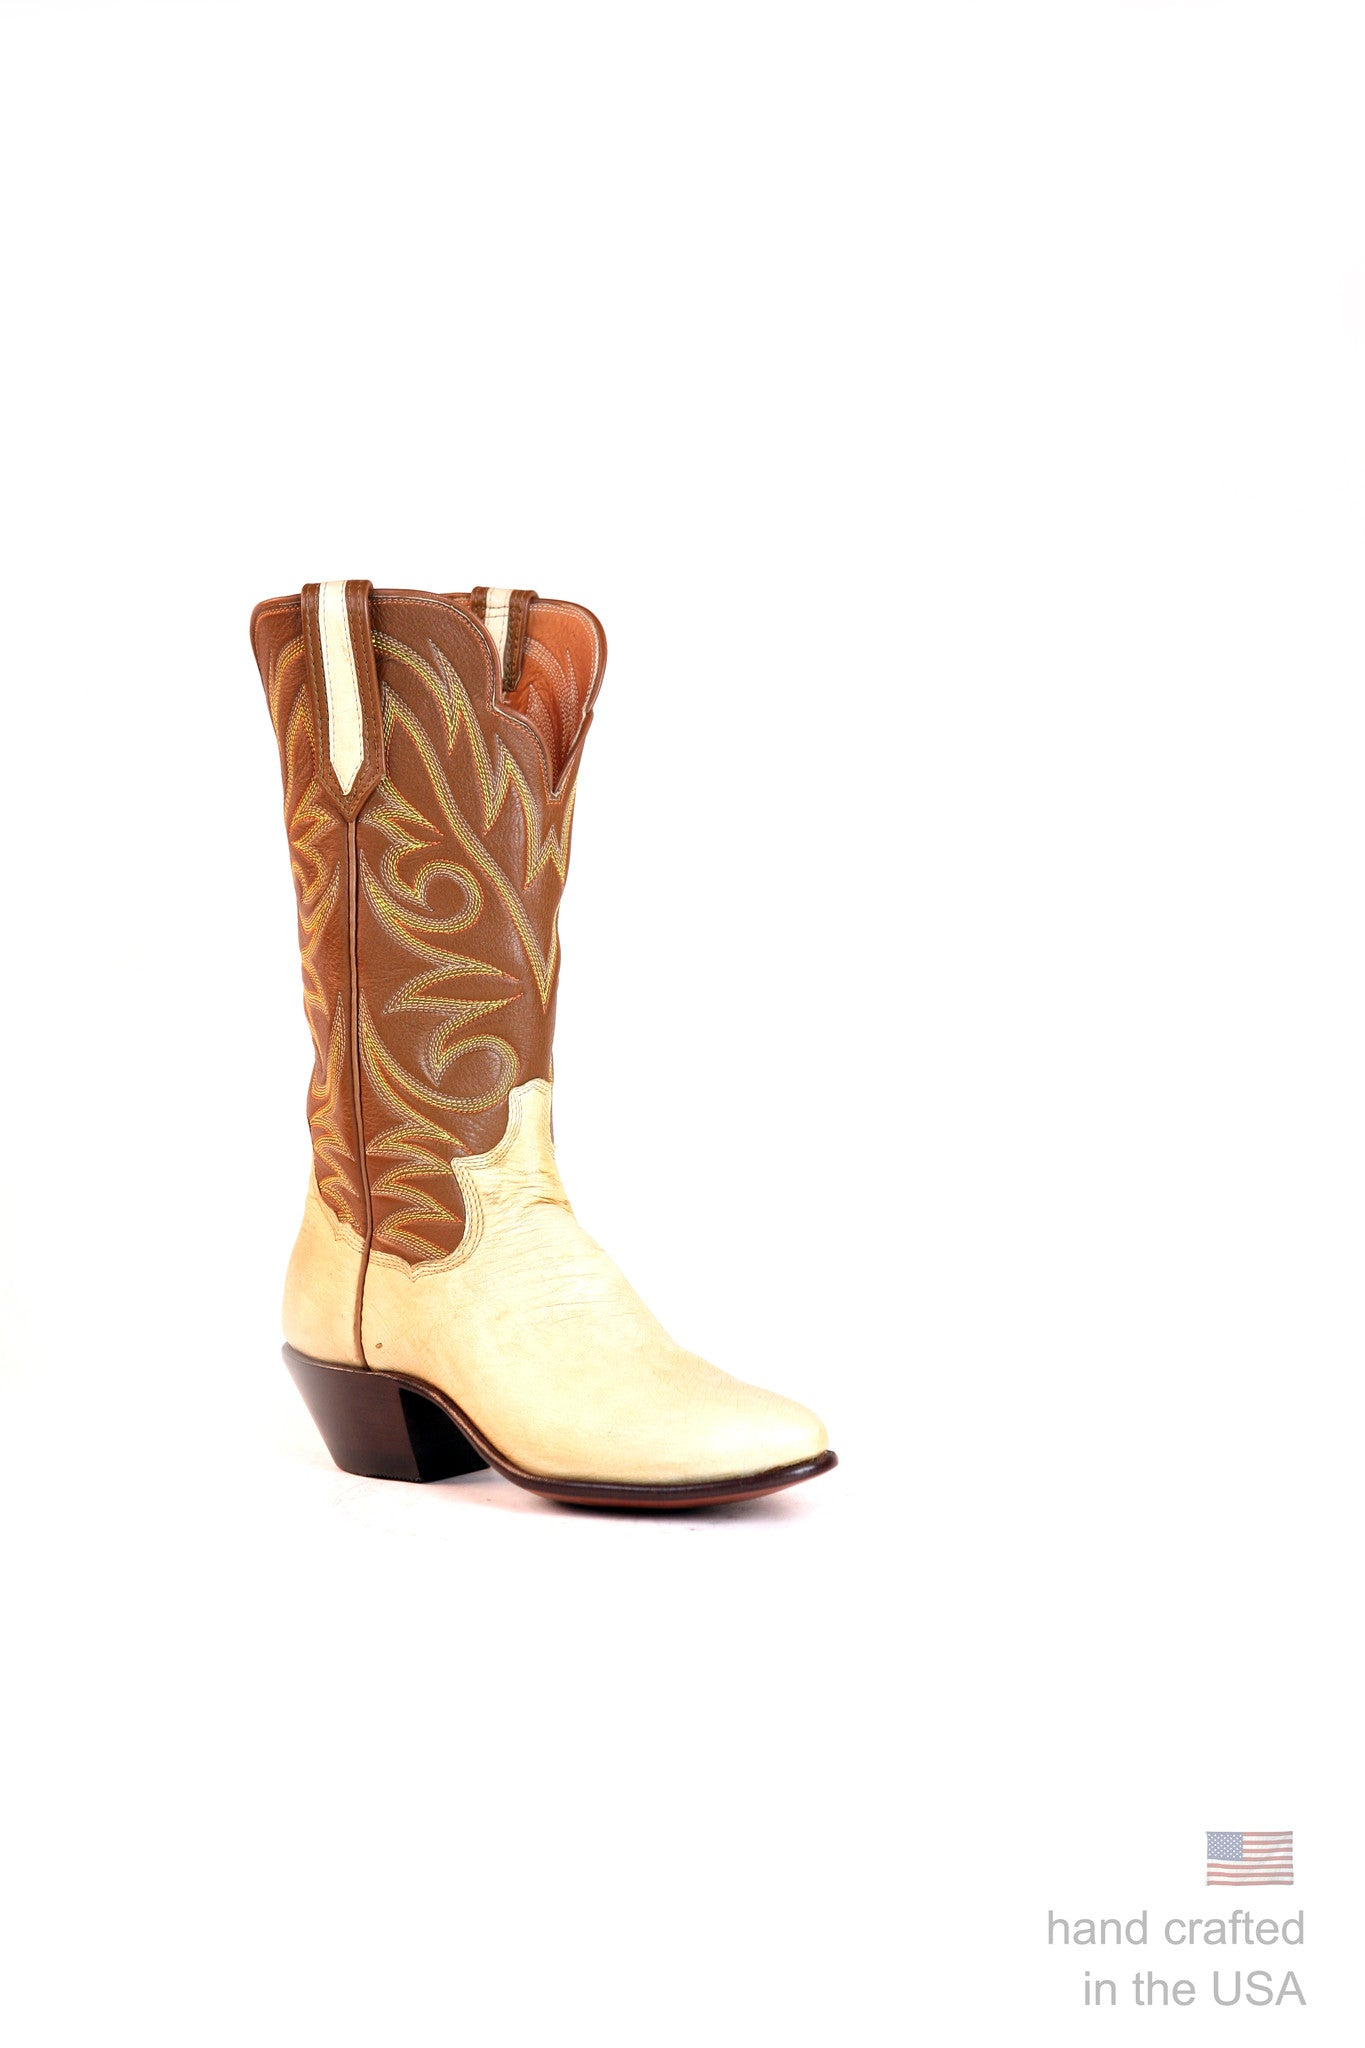 Singles: Boot 0024: Size 5B